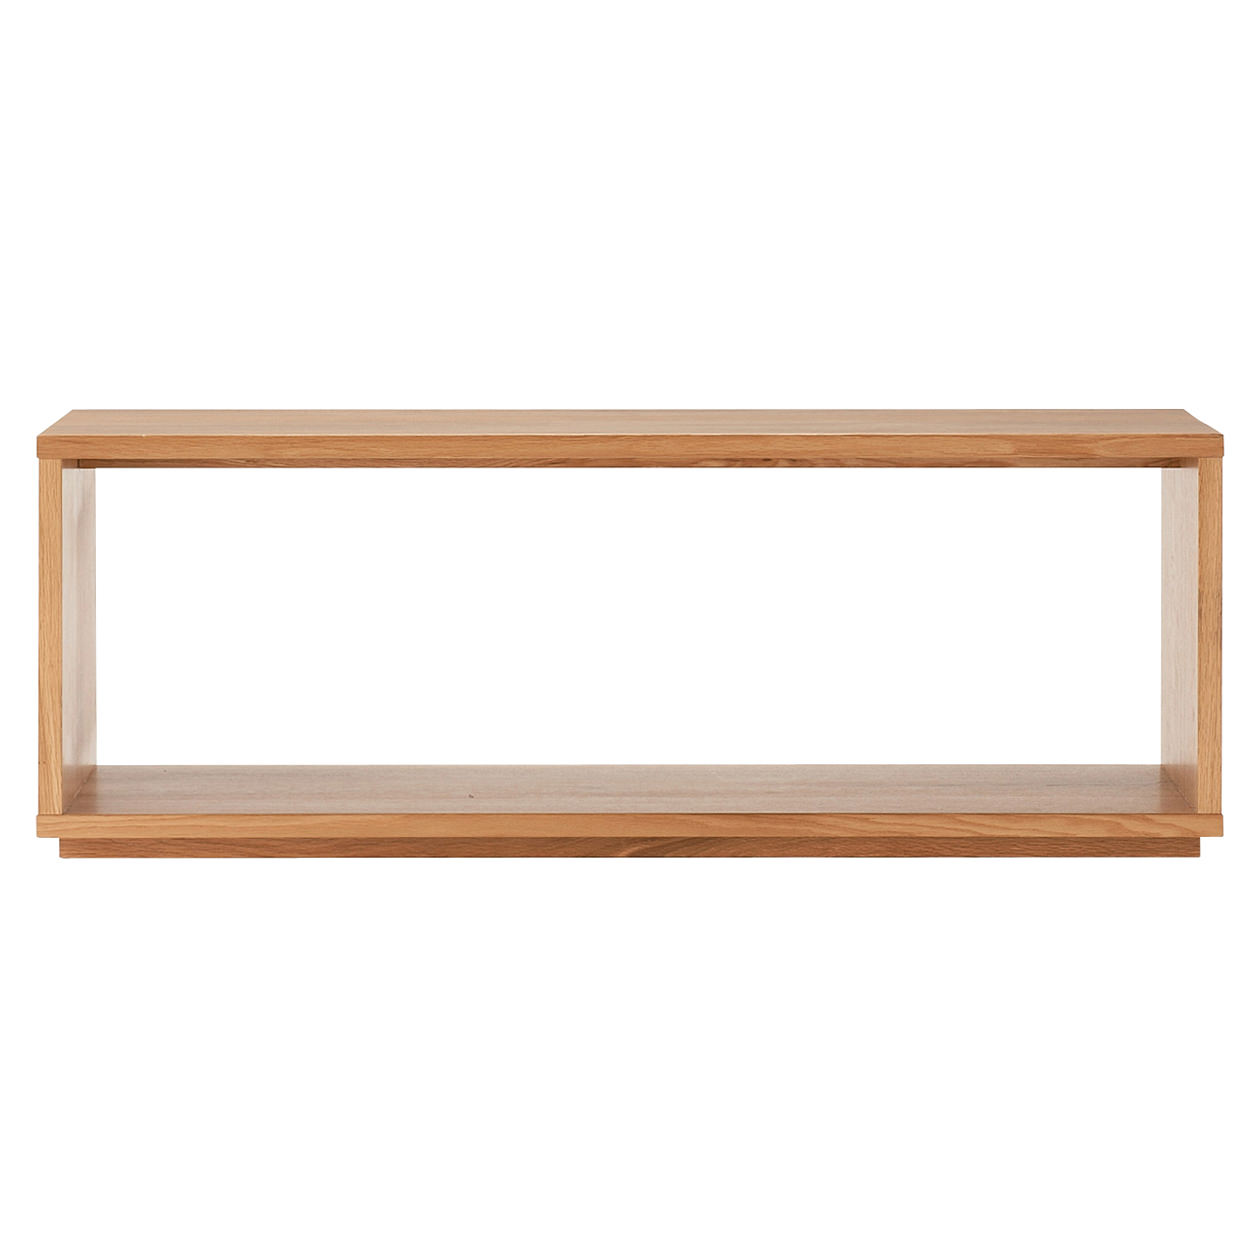 Oak Bench / Shelf